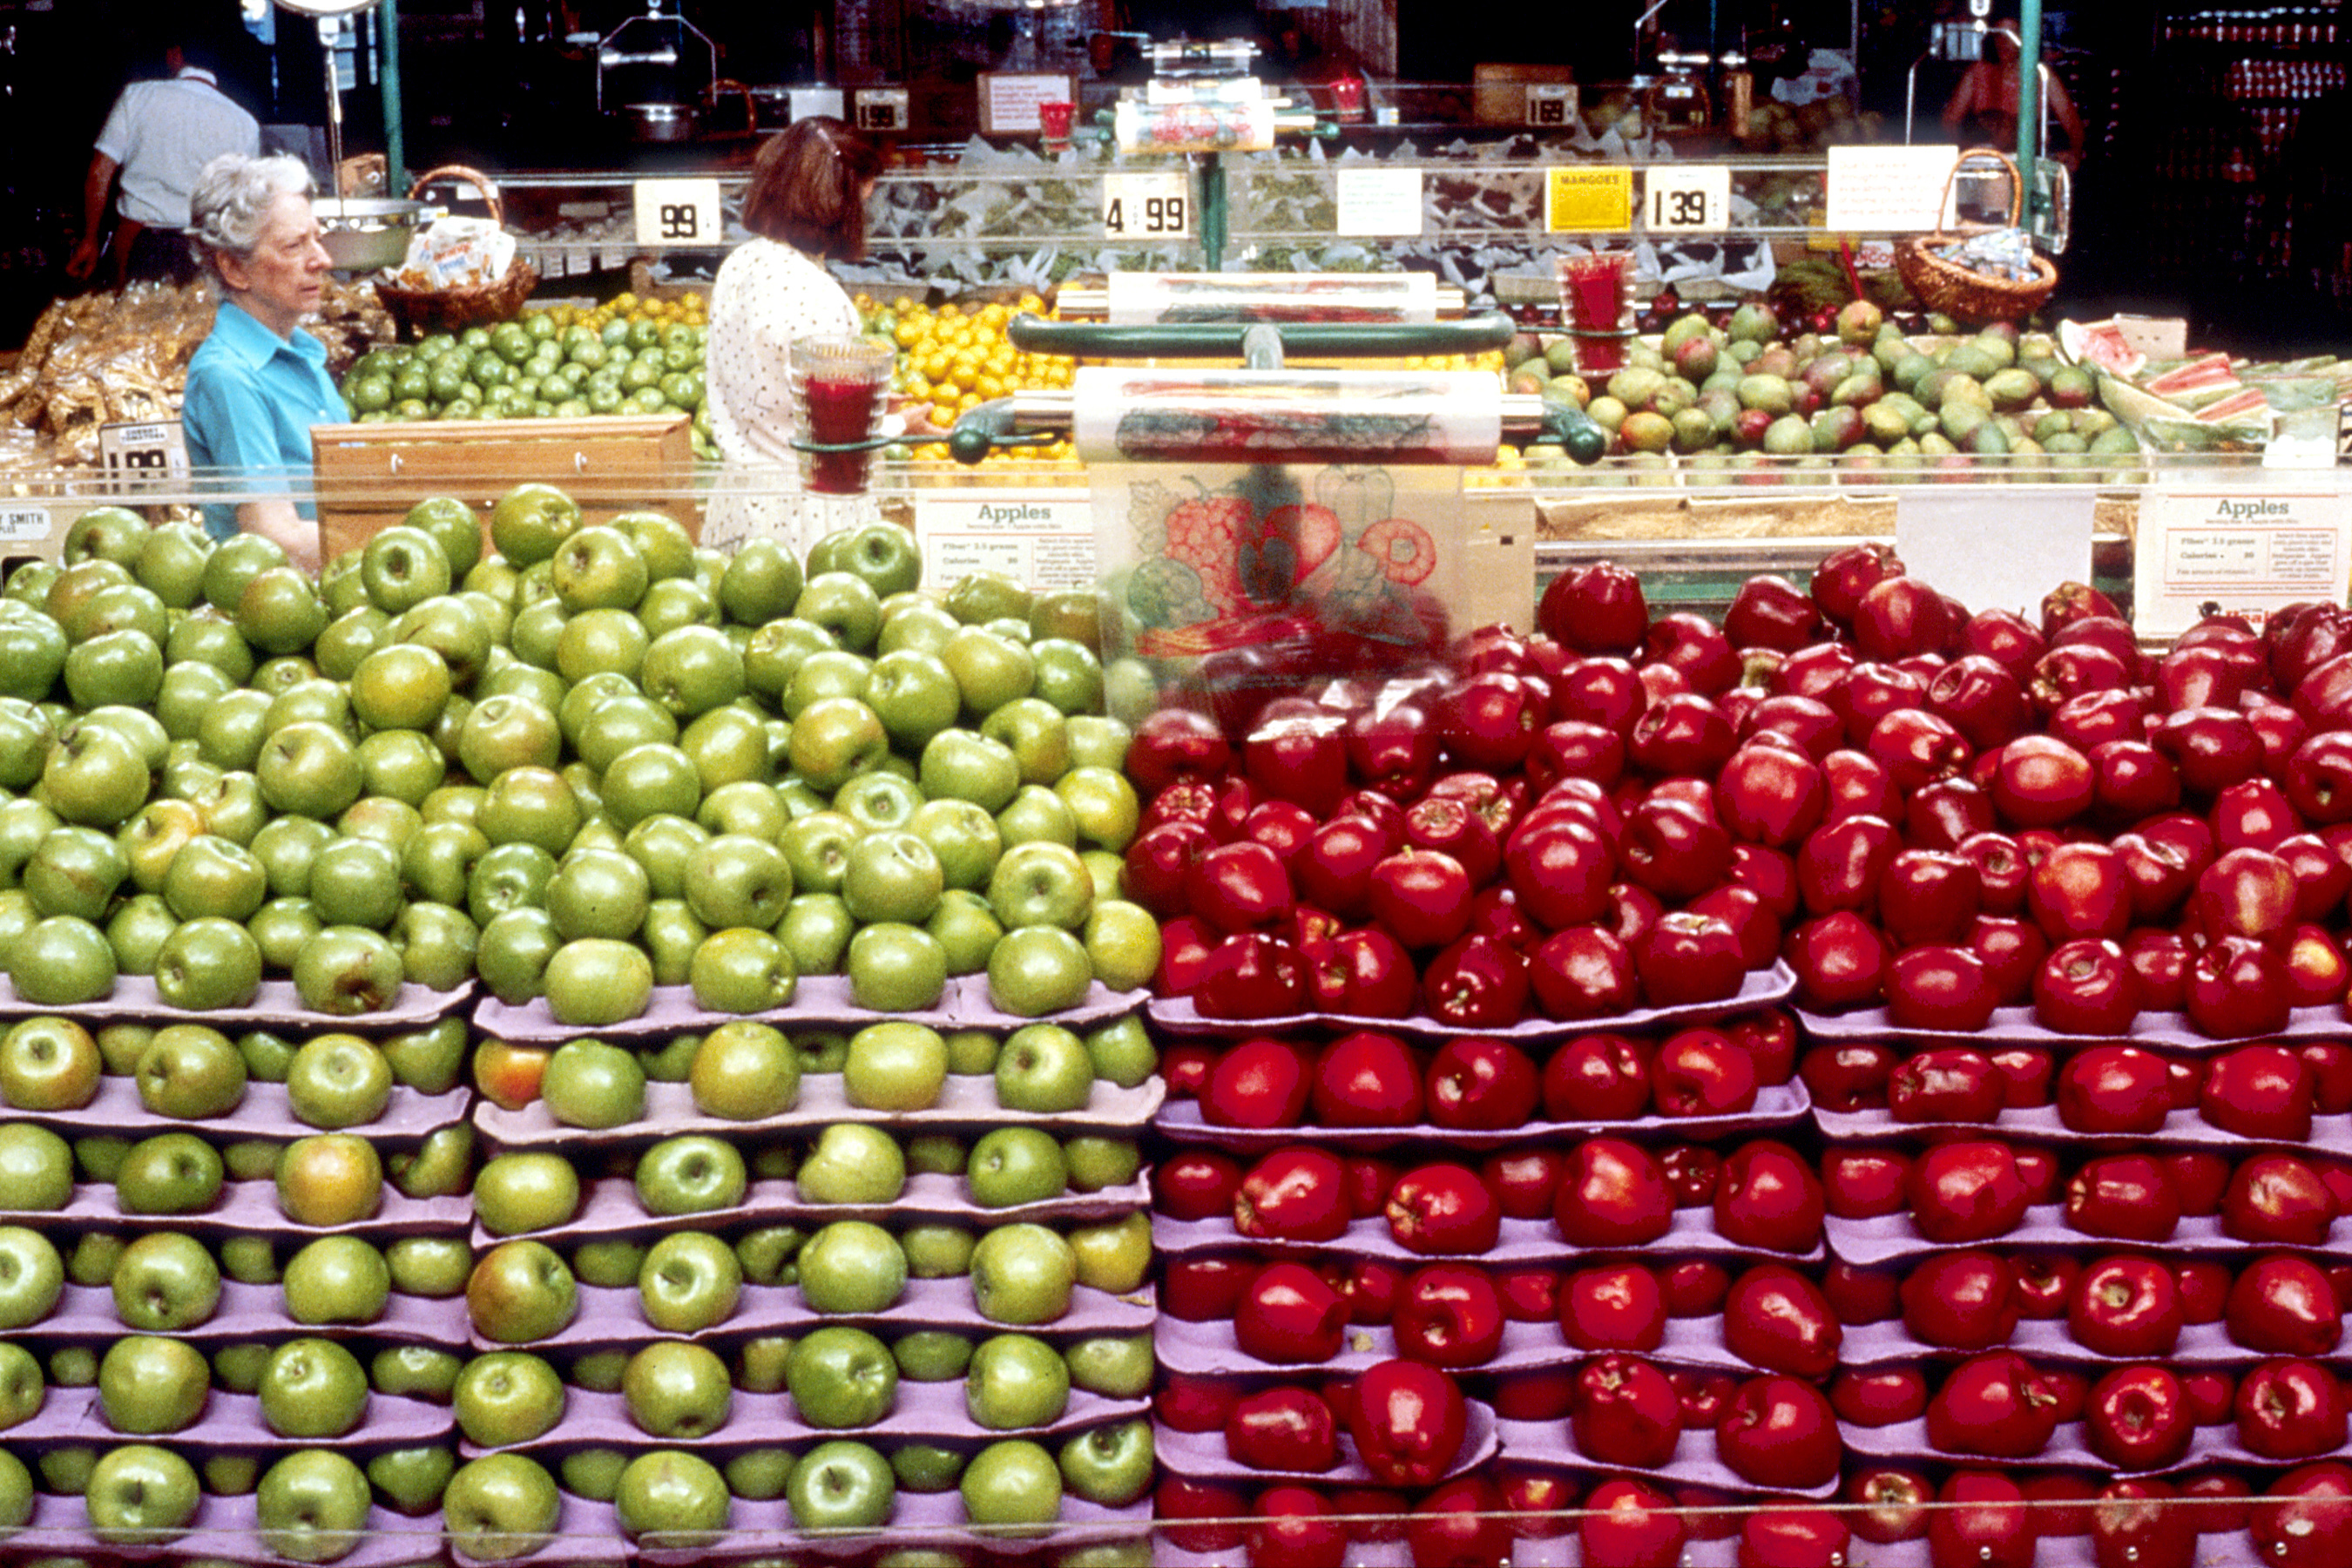 green and red apples. file:green and red apples.jpg green apples